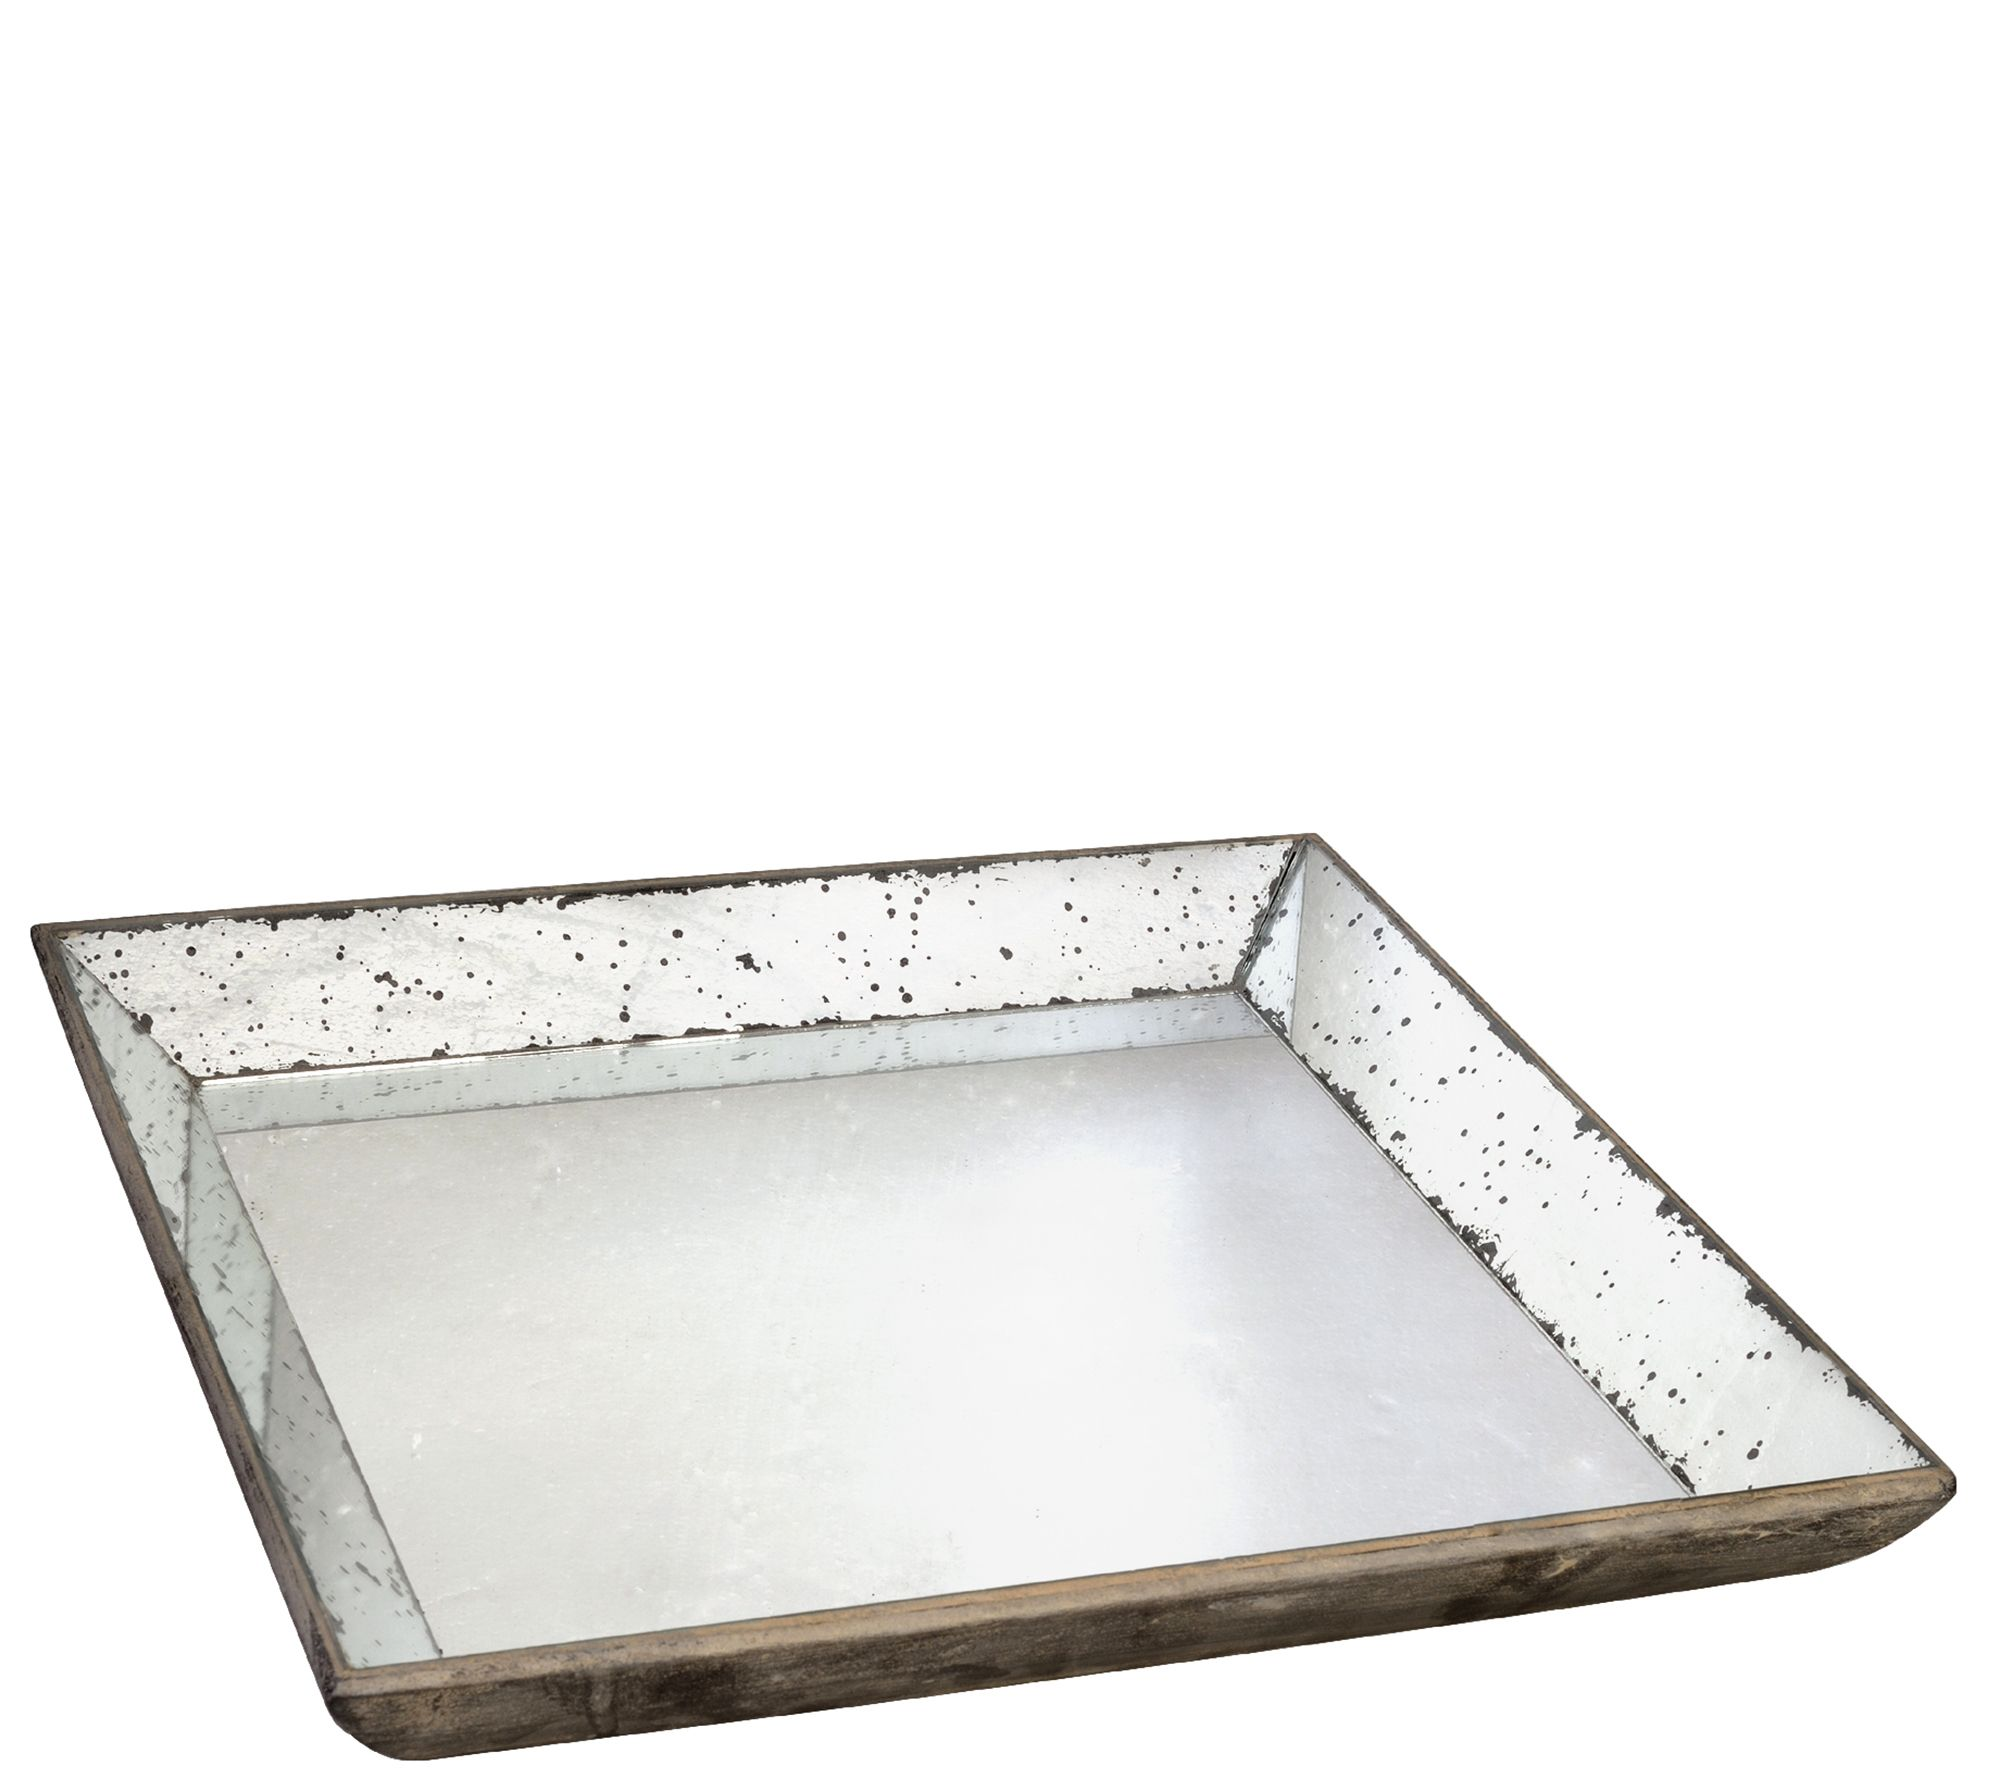 20 Square Mirrored Tray By Valerie